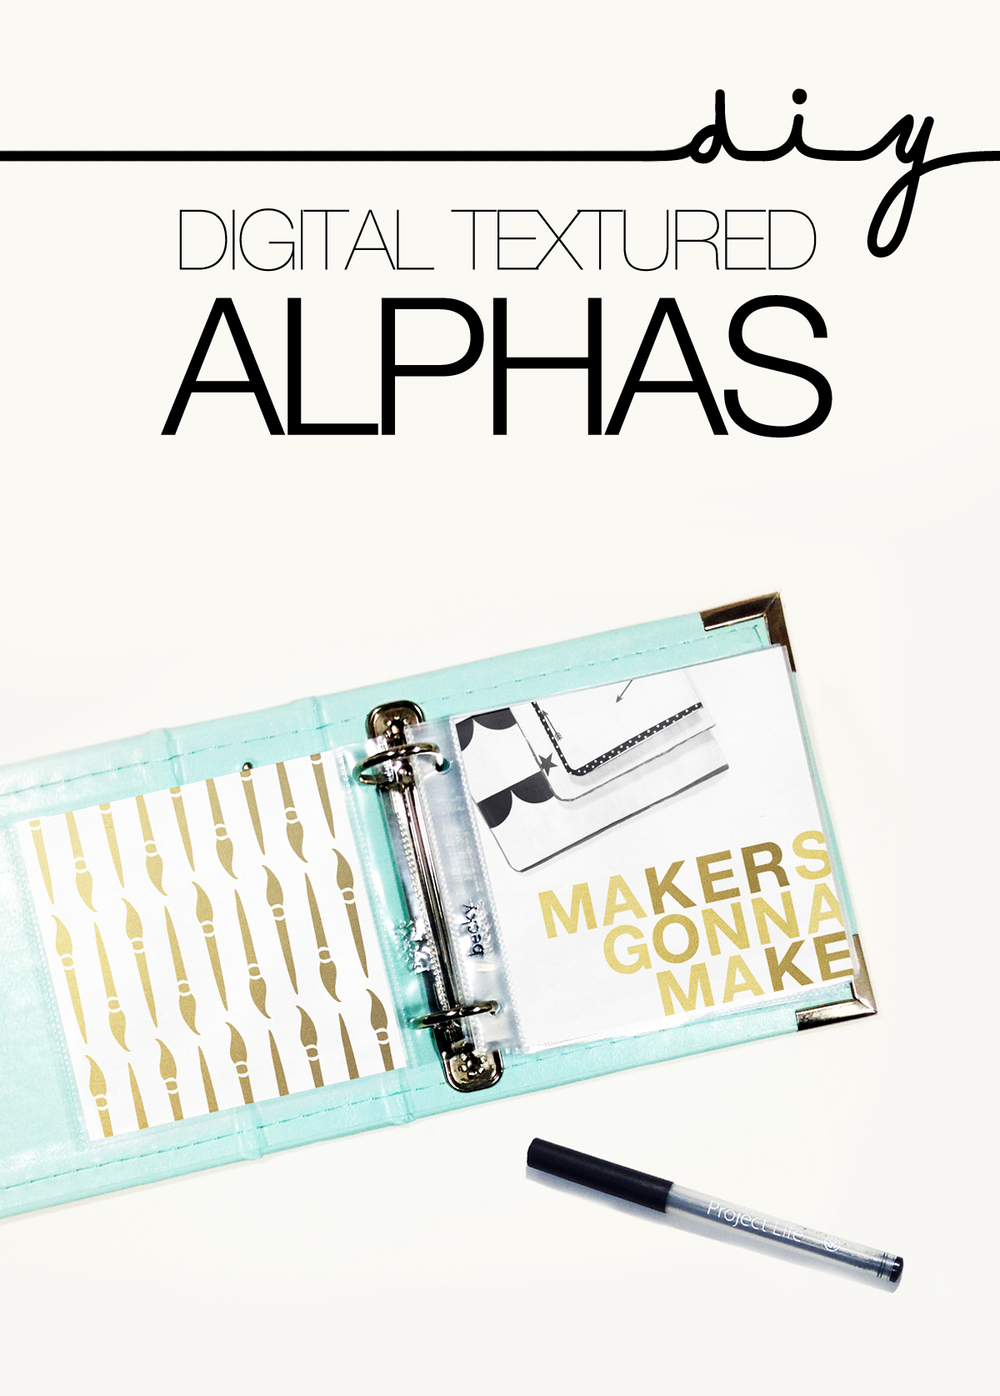 DIY DIGITAL TEXTURED ALPHAS | THE PAPER CURATOR